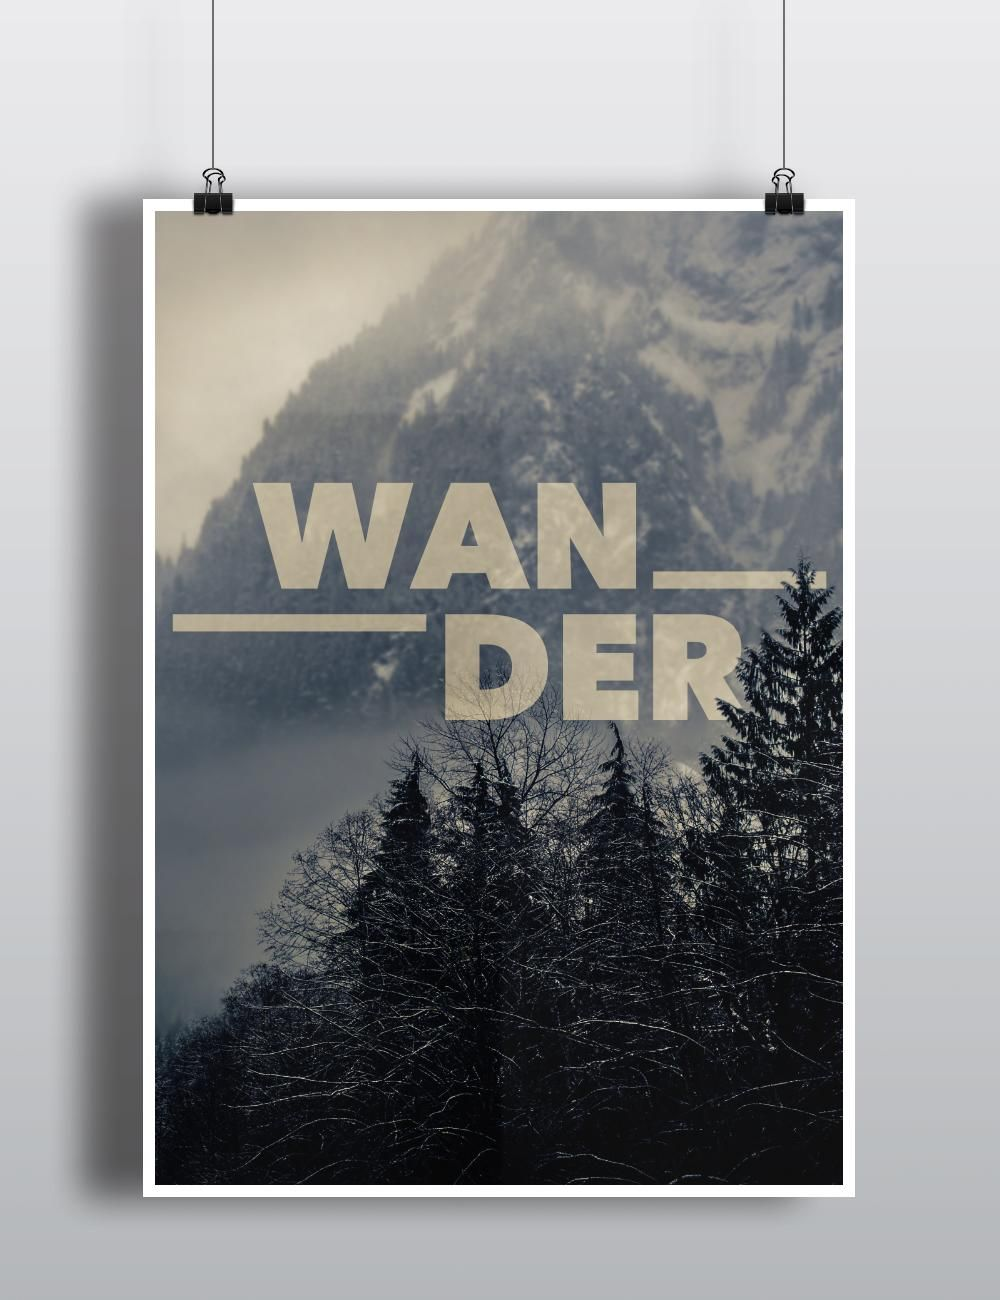 Endless Summer & Wander Poster - image 2 - student project